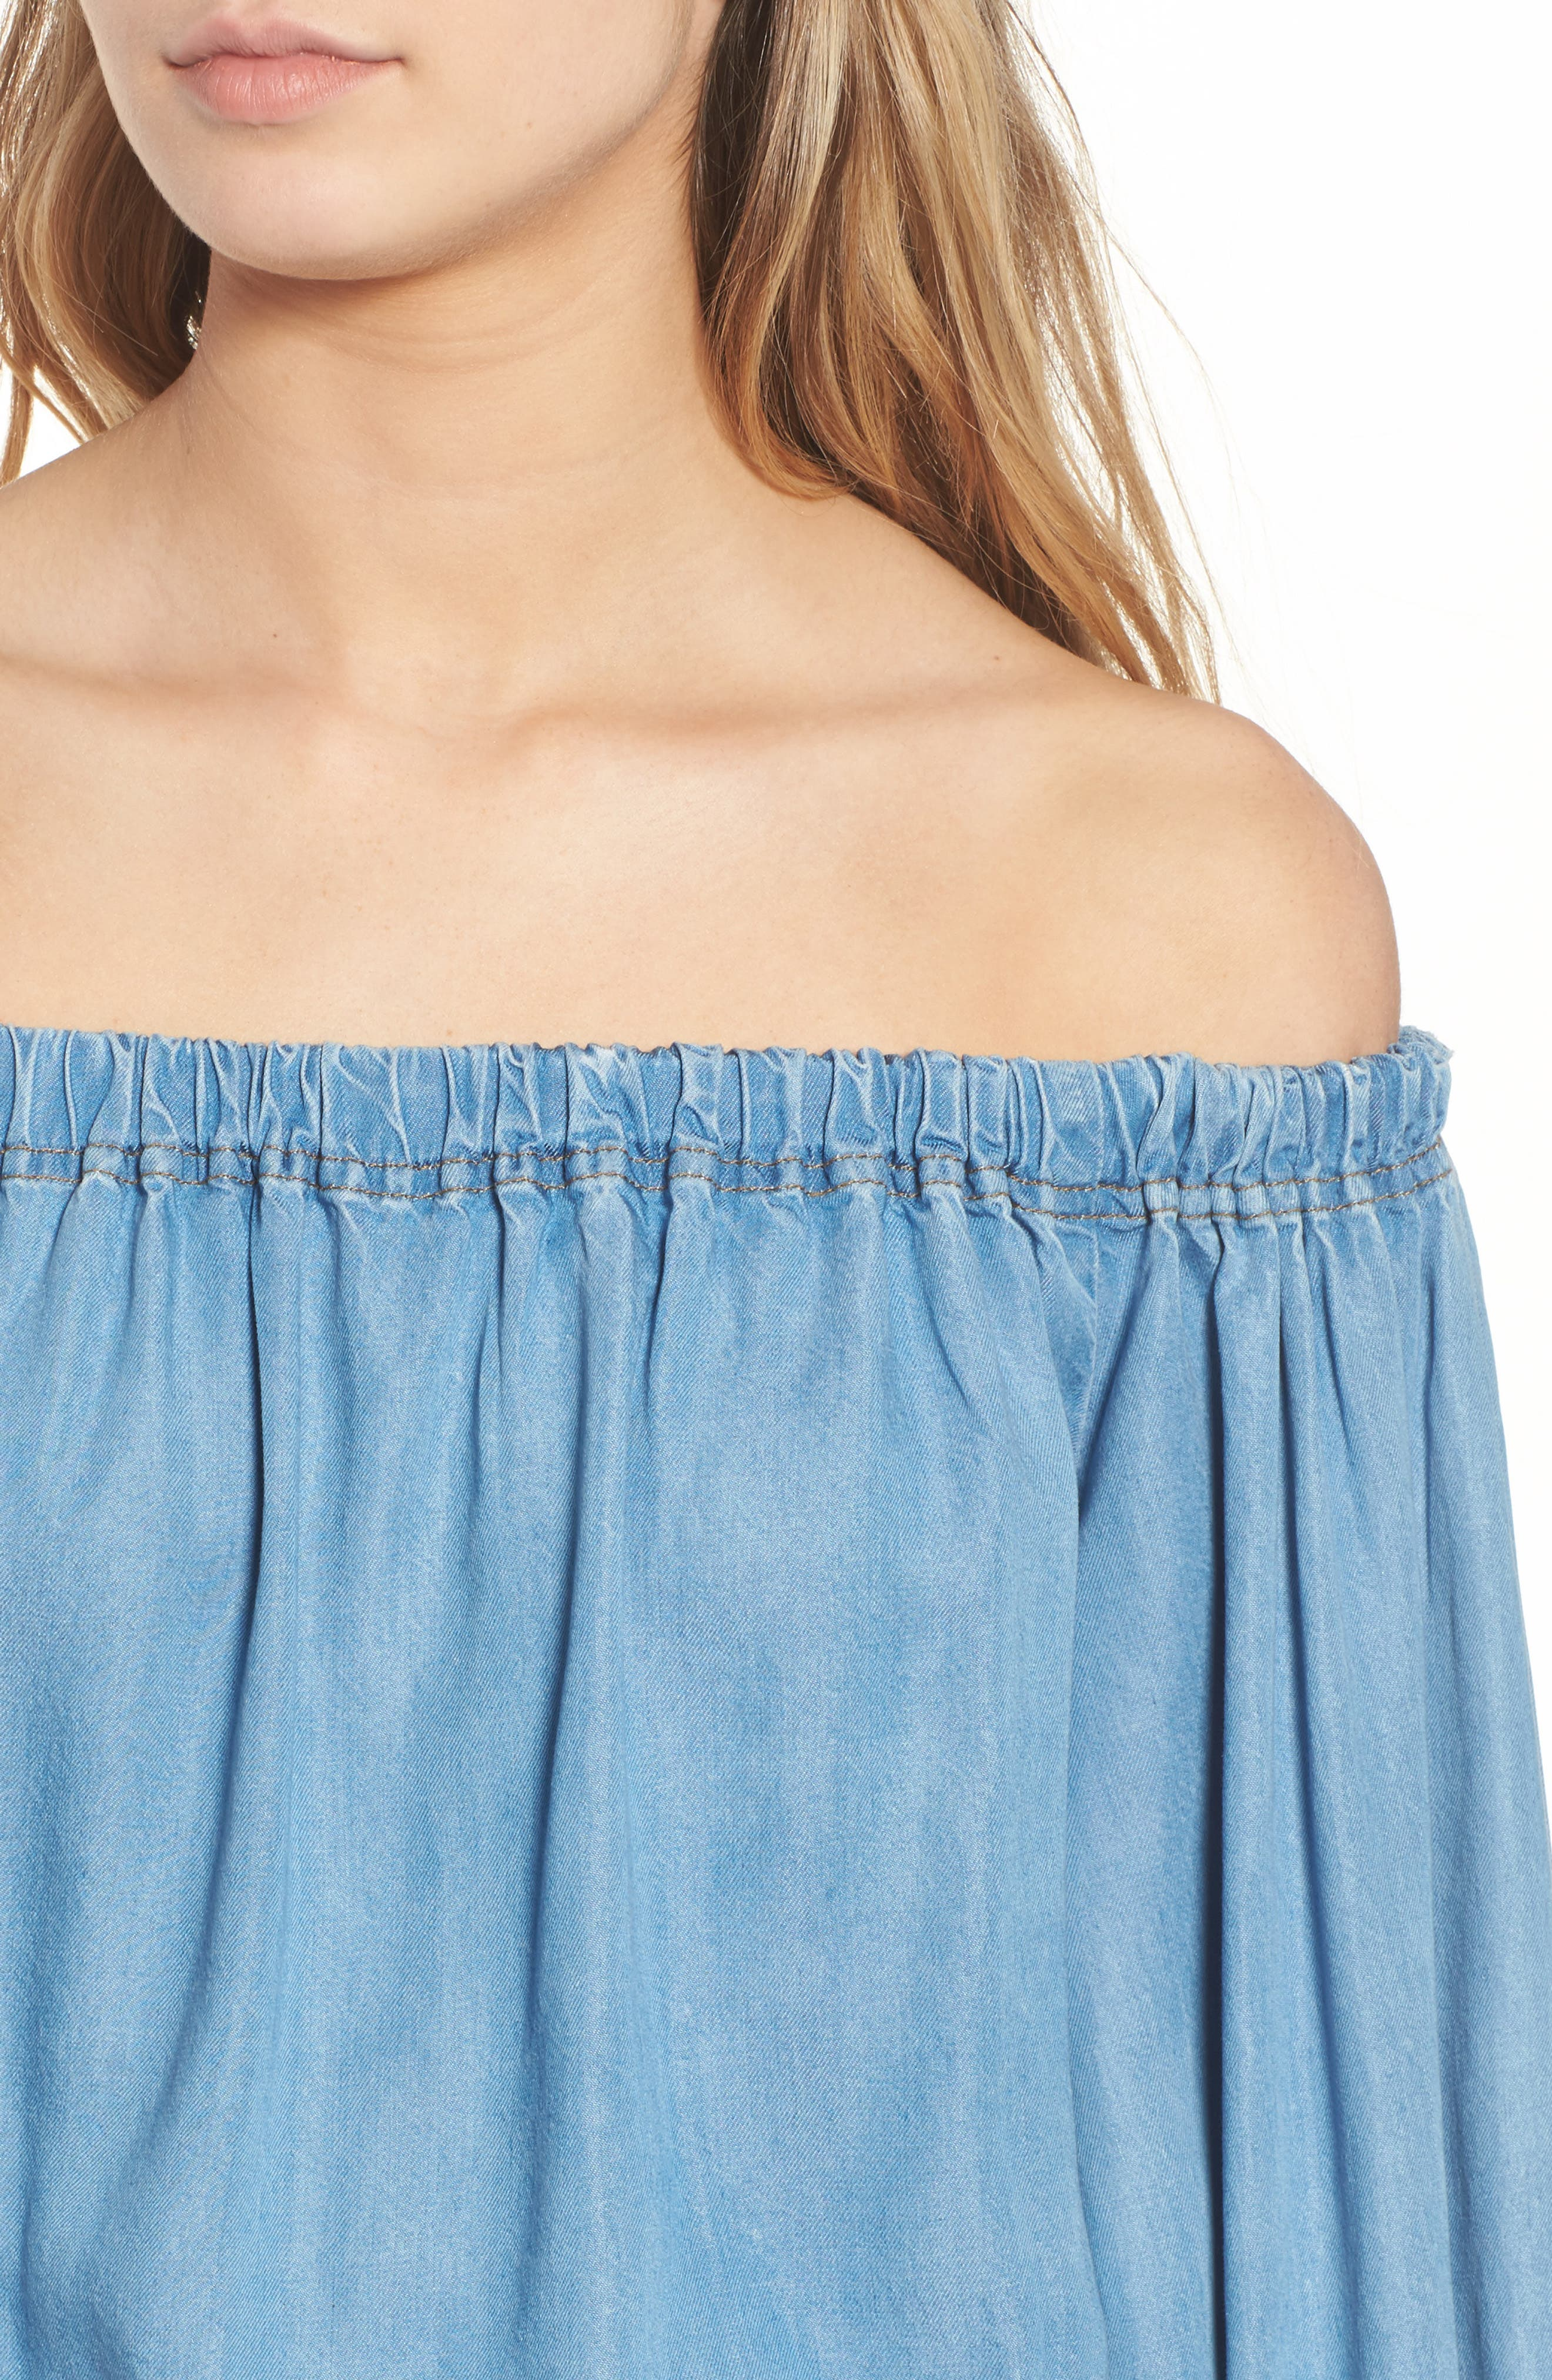 Blouson Off the Shoulder Denim Top,                             Alternate thumbnail 4, color,                             401